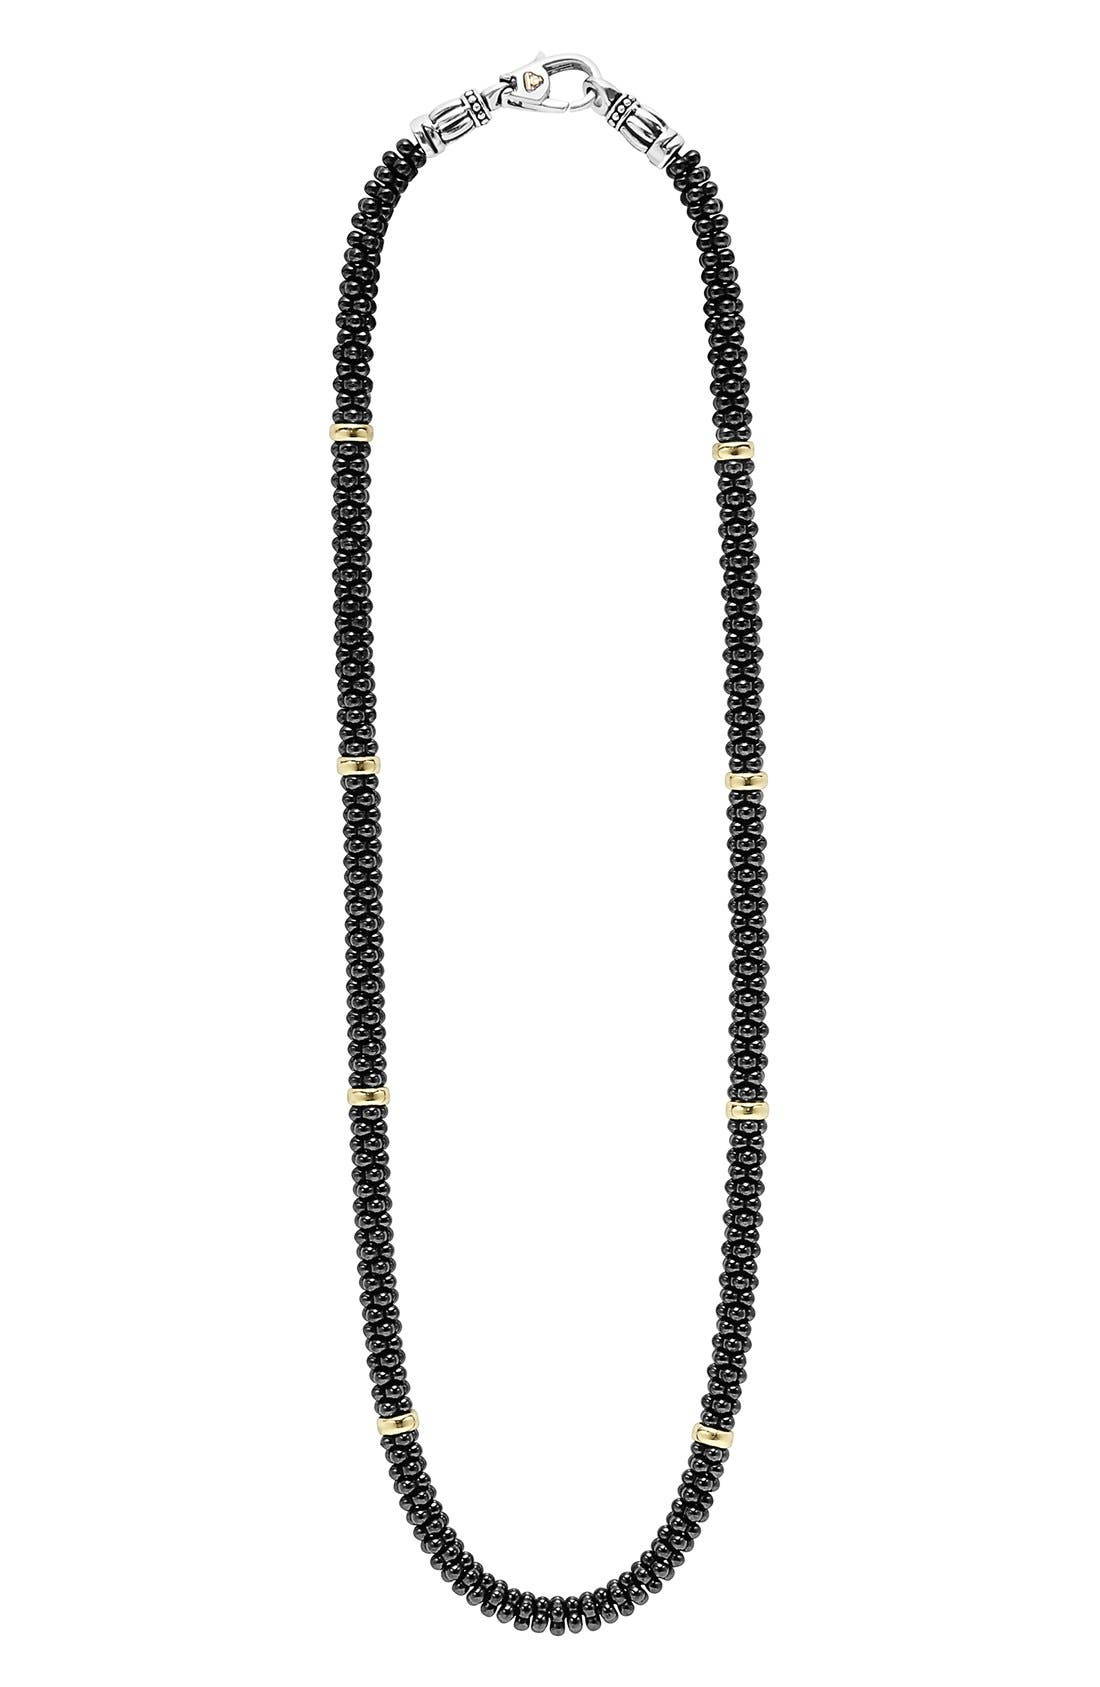 Alternate Image 1 Selected - LAGOS 'Black Caviar' Station Rope Necklace